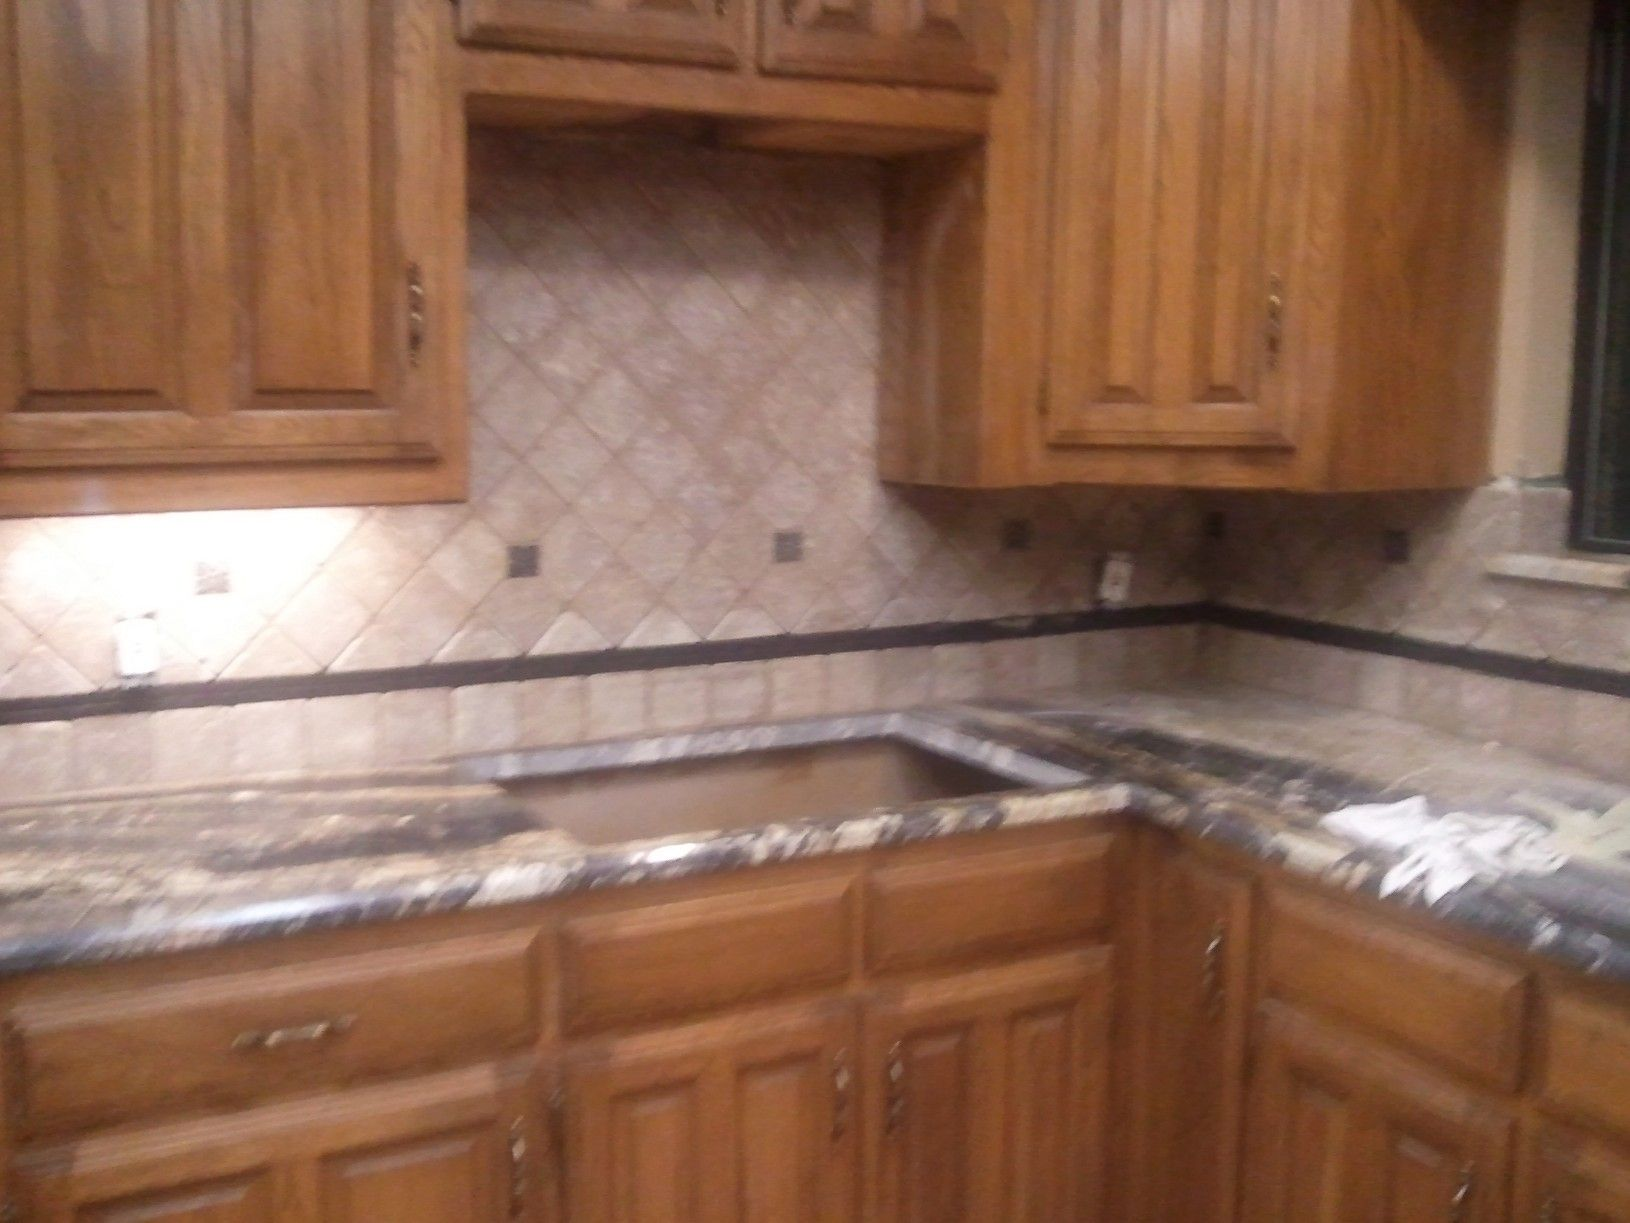 Backsplash in too!!